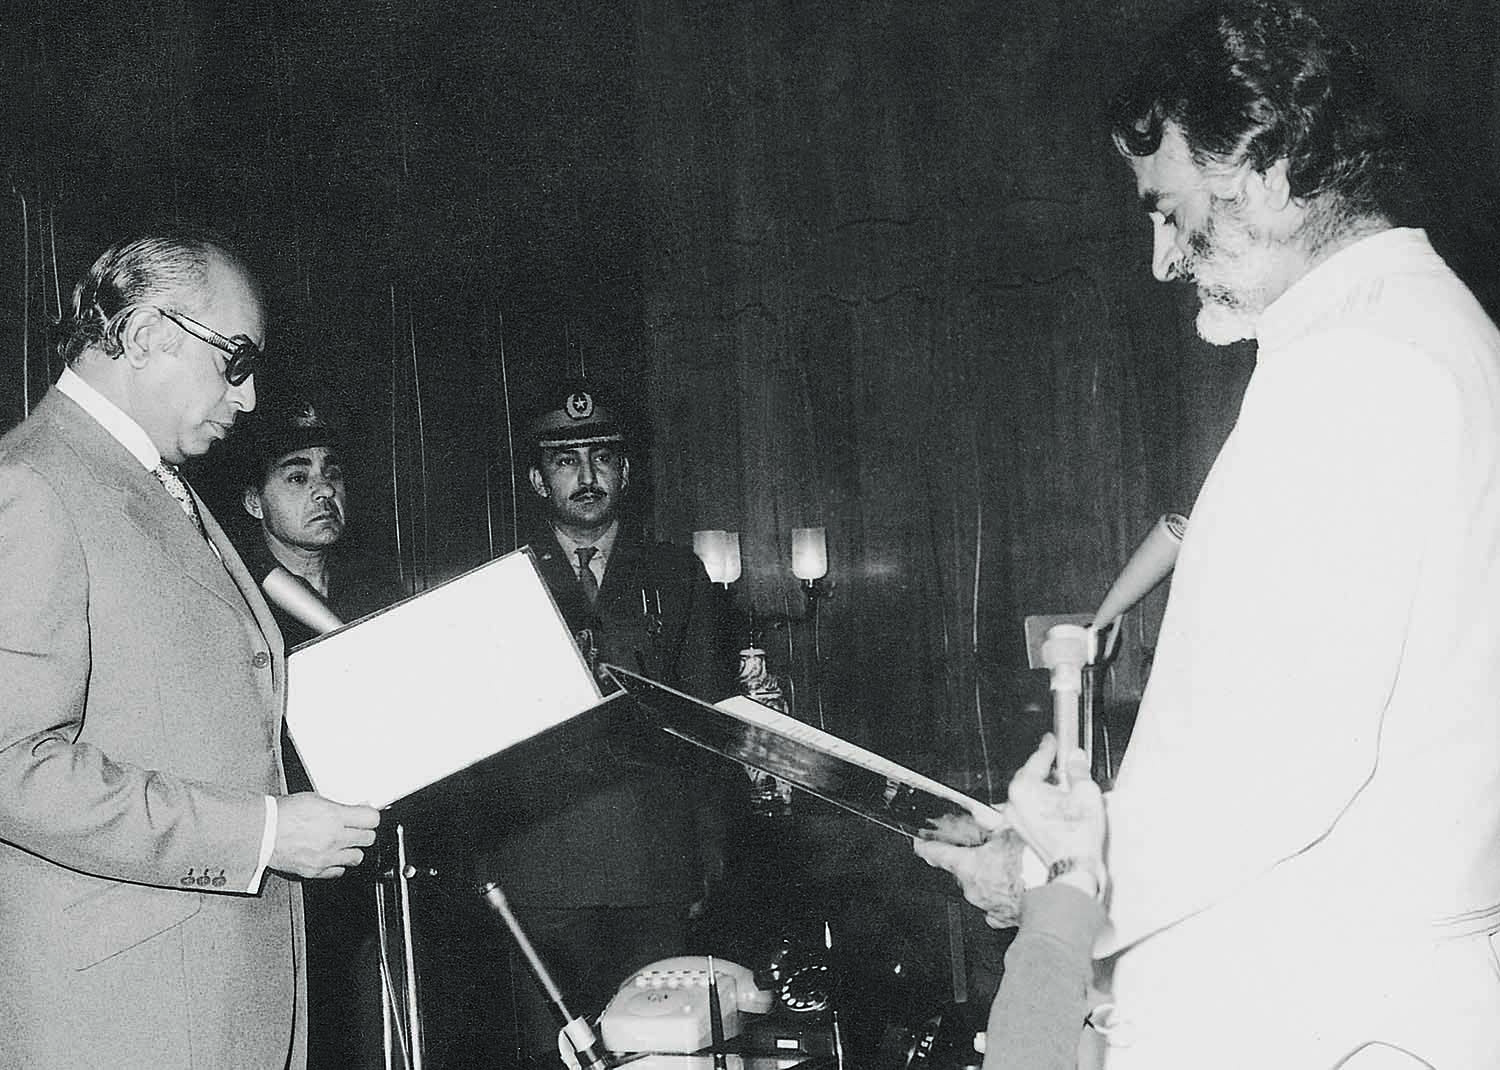 Nawab Akbar Khan Bugti (right) is sworn in as the Governor of Baluchistan by President Zulfikar Ali Bhutto (left) in February 1973. | Photo: Dawn / White Star Archives